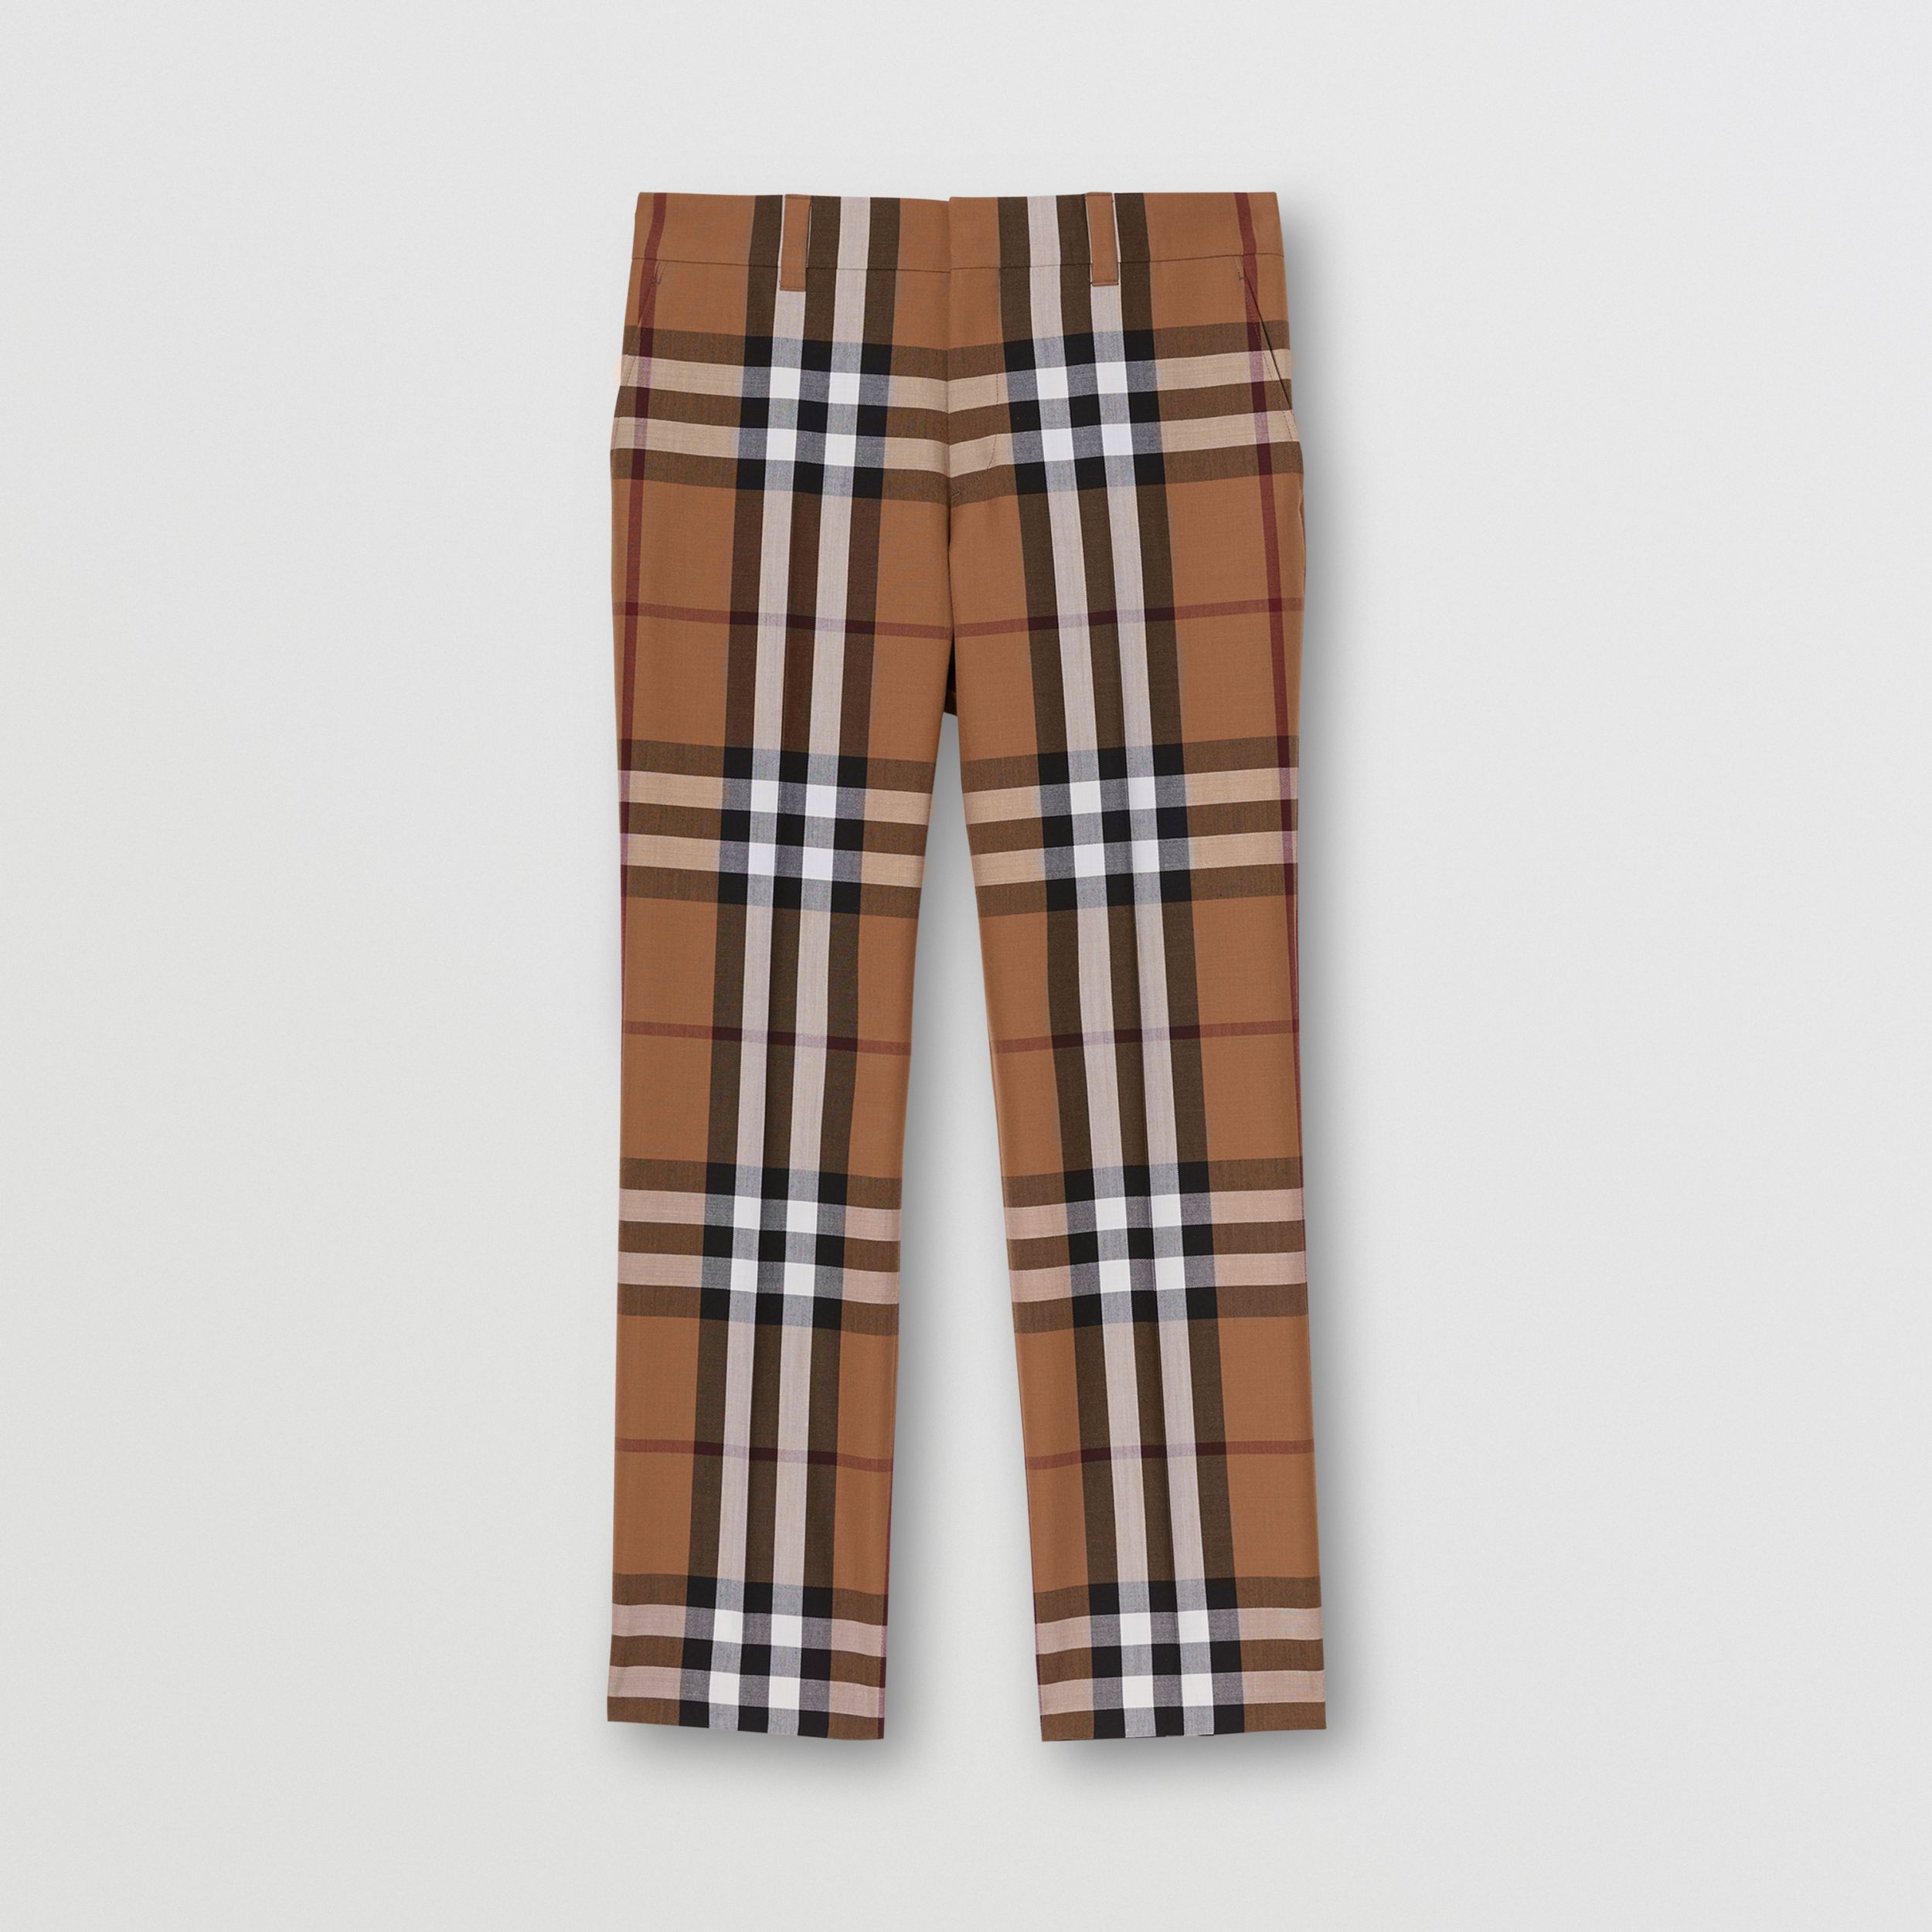 House Check Wool Tailored Trousers in Birch Brown | Burberry United Kingdom - 4